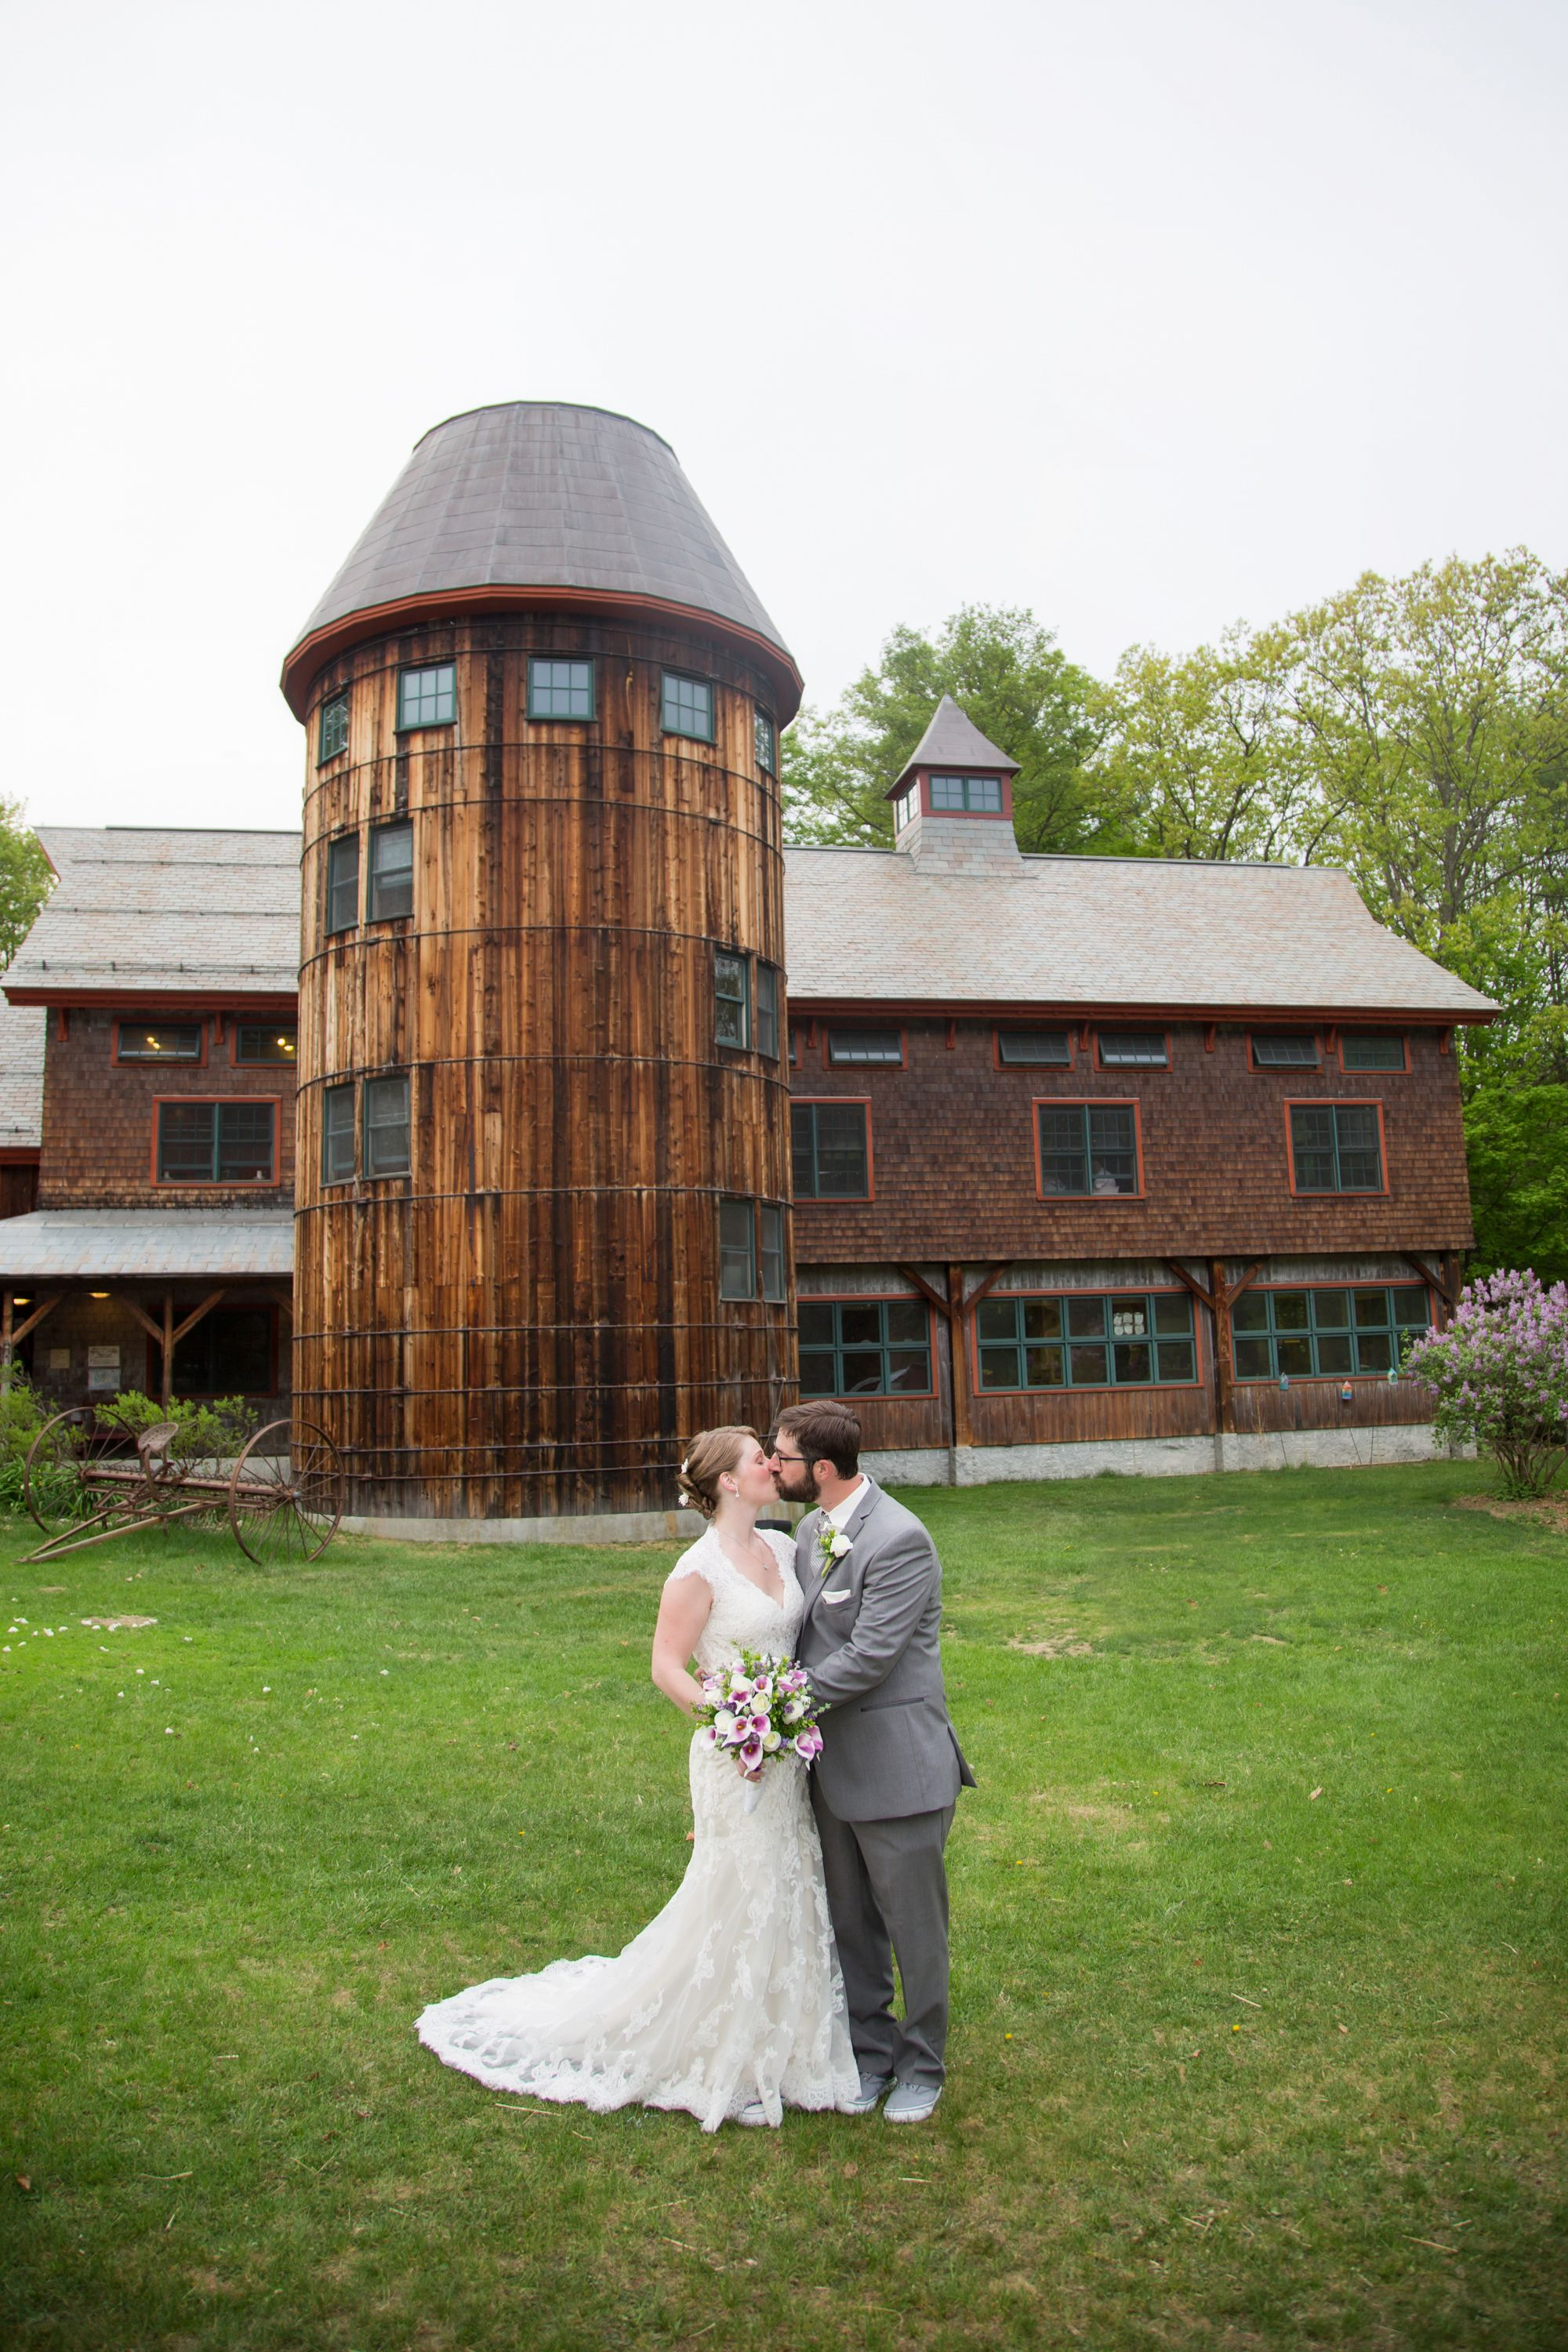 A Vibrant Rustic Wedding At Stonewall Farm In Keene New Hampshire Stonewall Farm Wedding Rustic Wedding